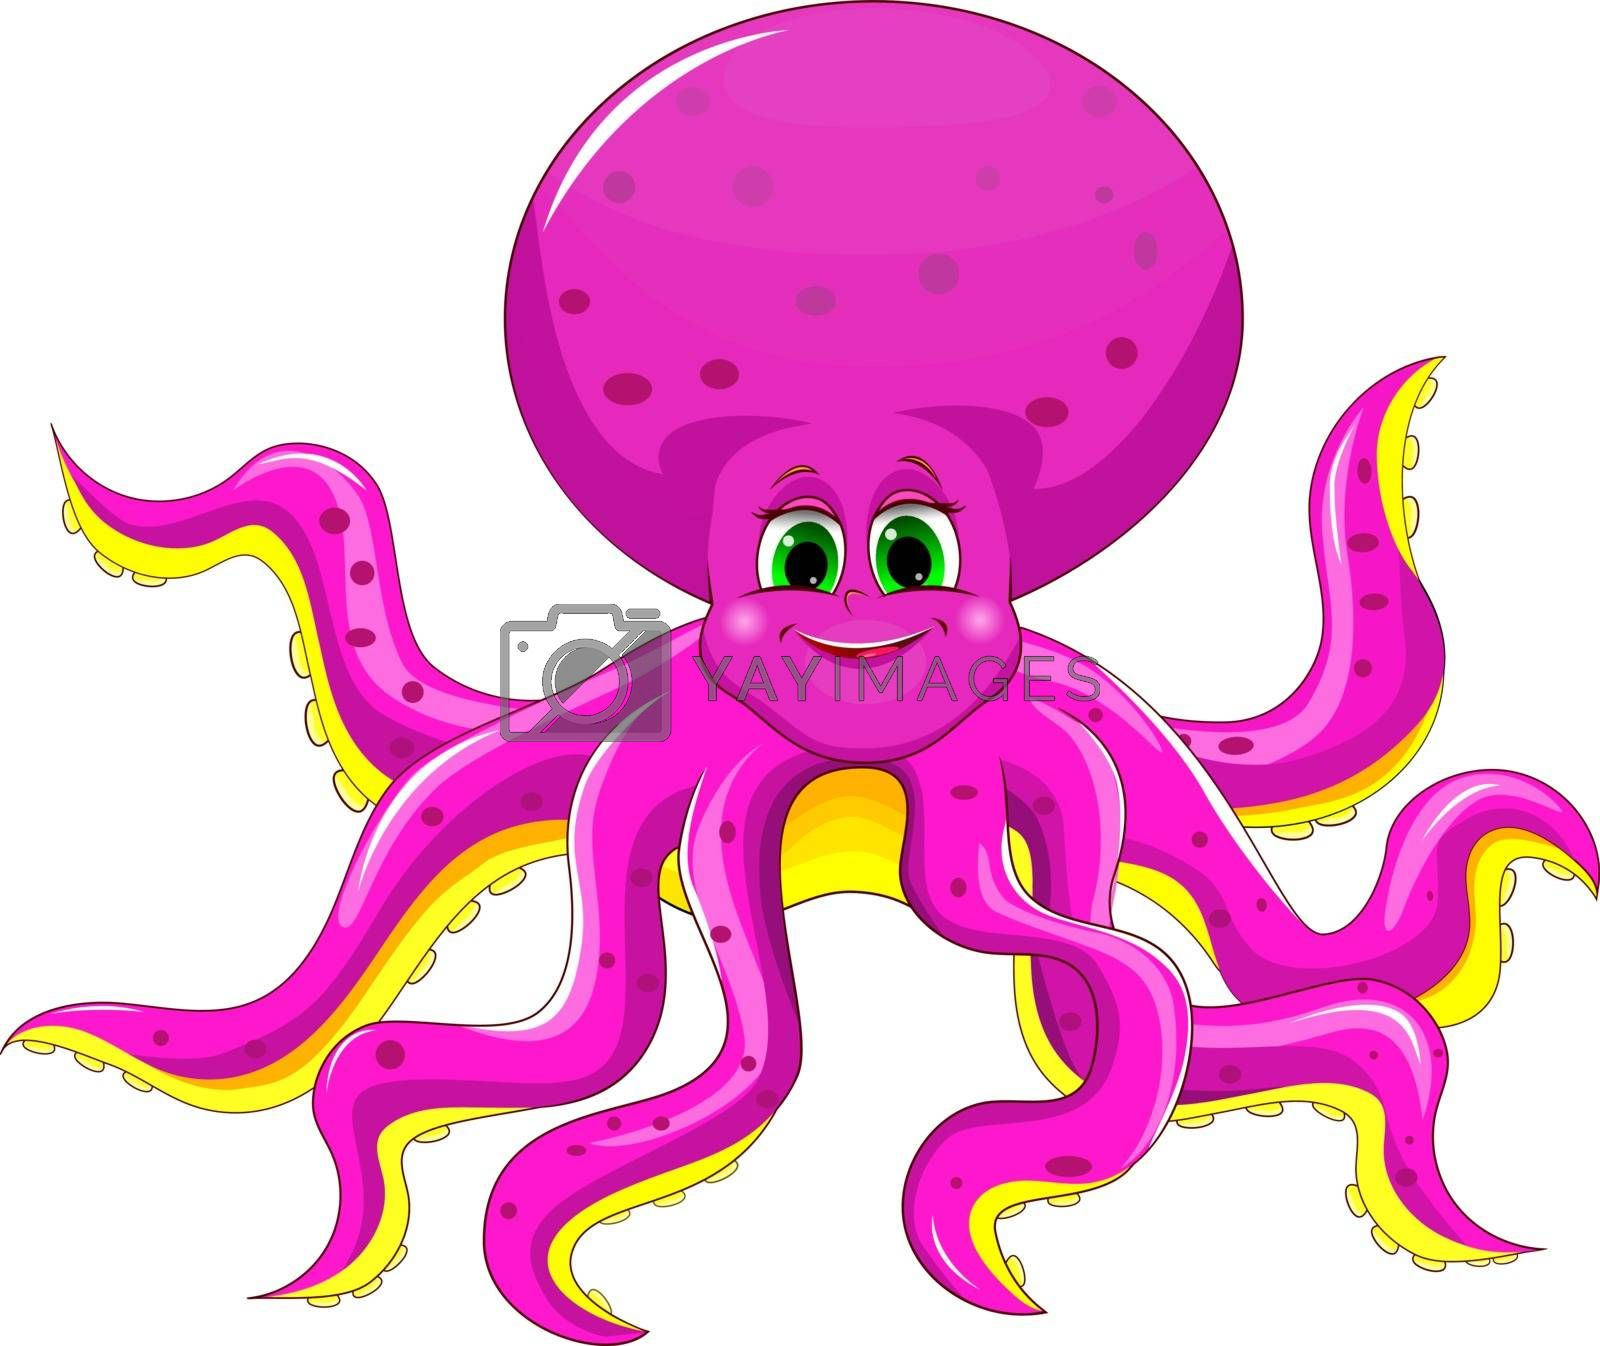 Cartoon octopus pink on a white background.